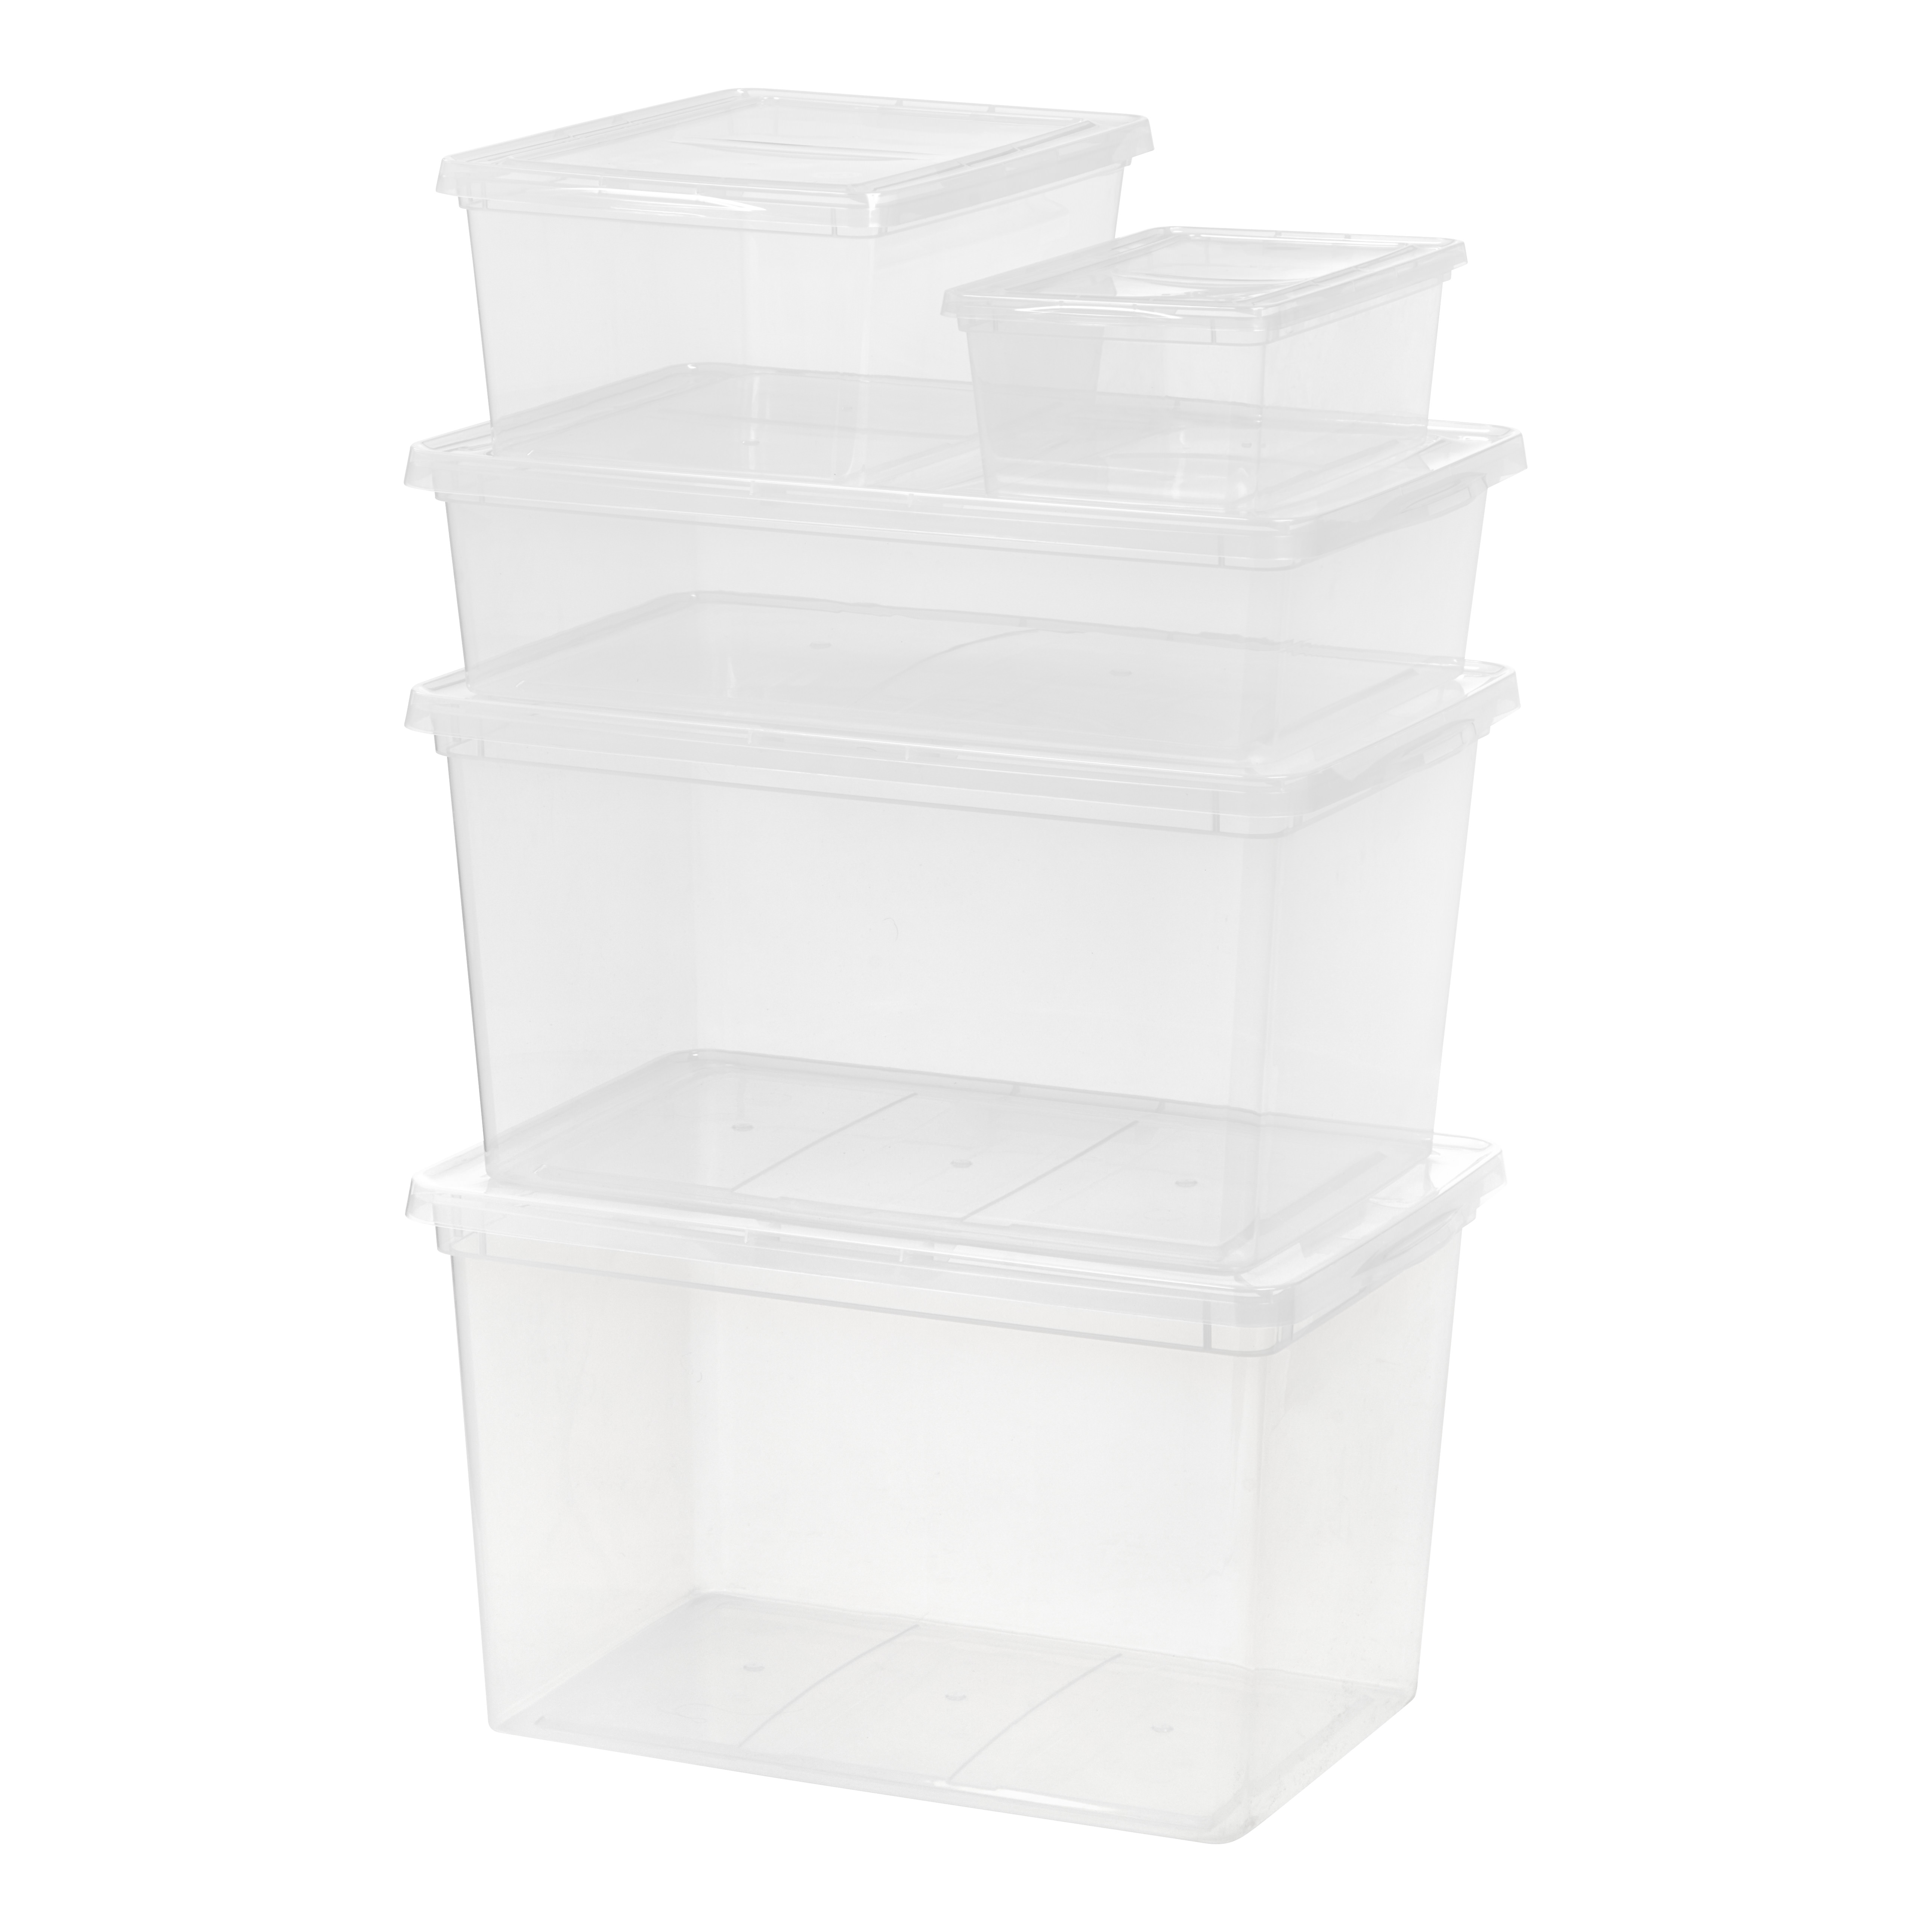 Mainstays Closet Storage Containers Collection Walmart Com